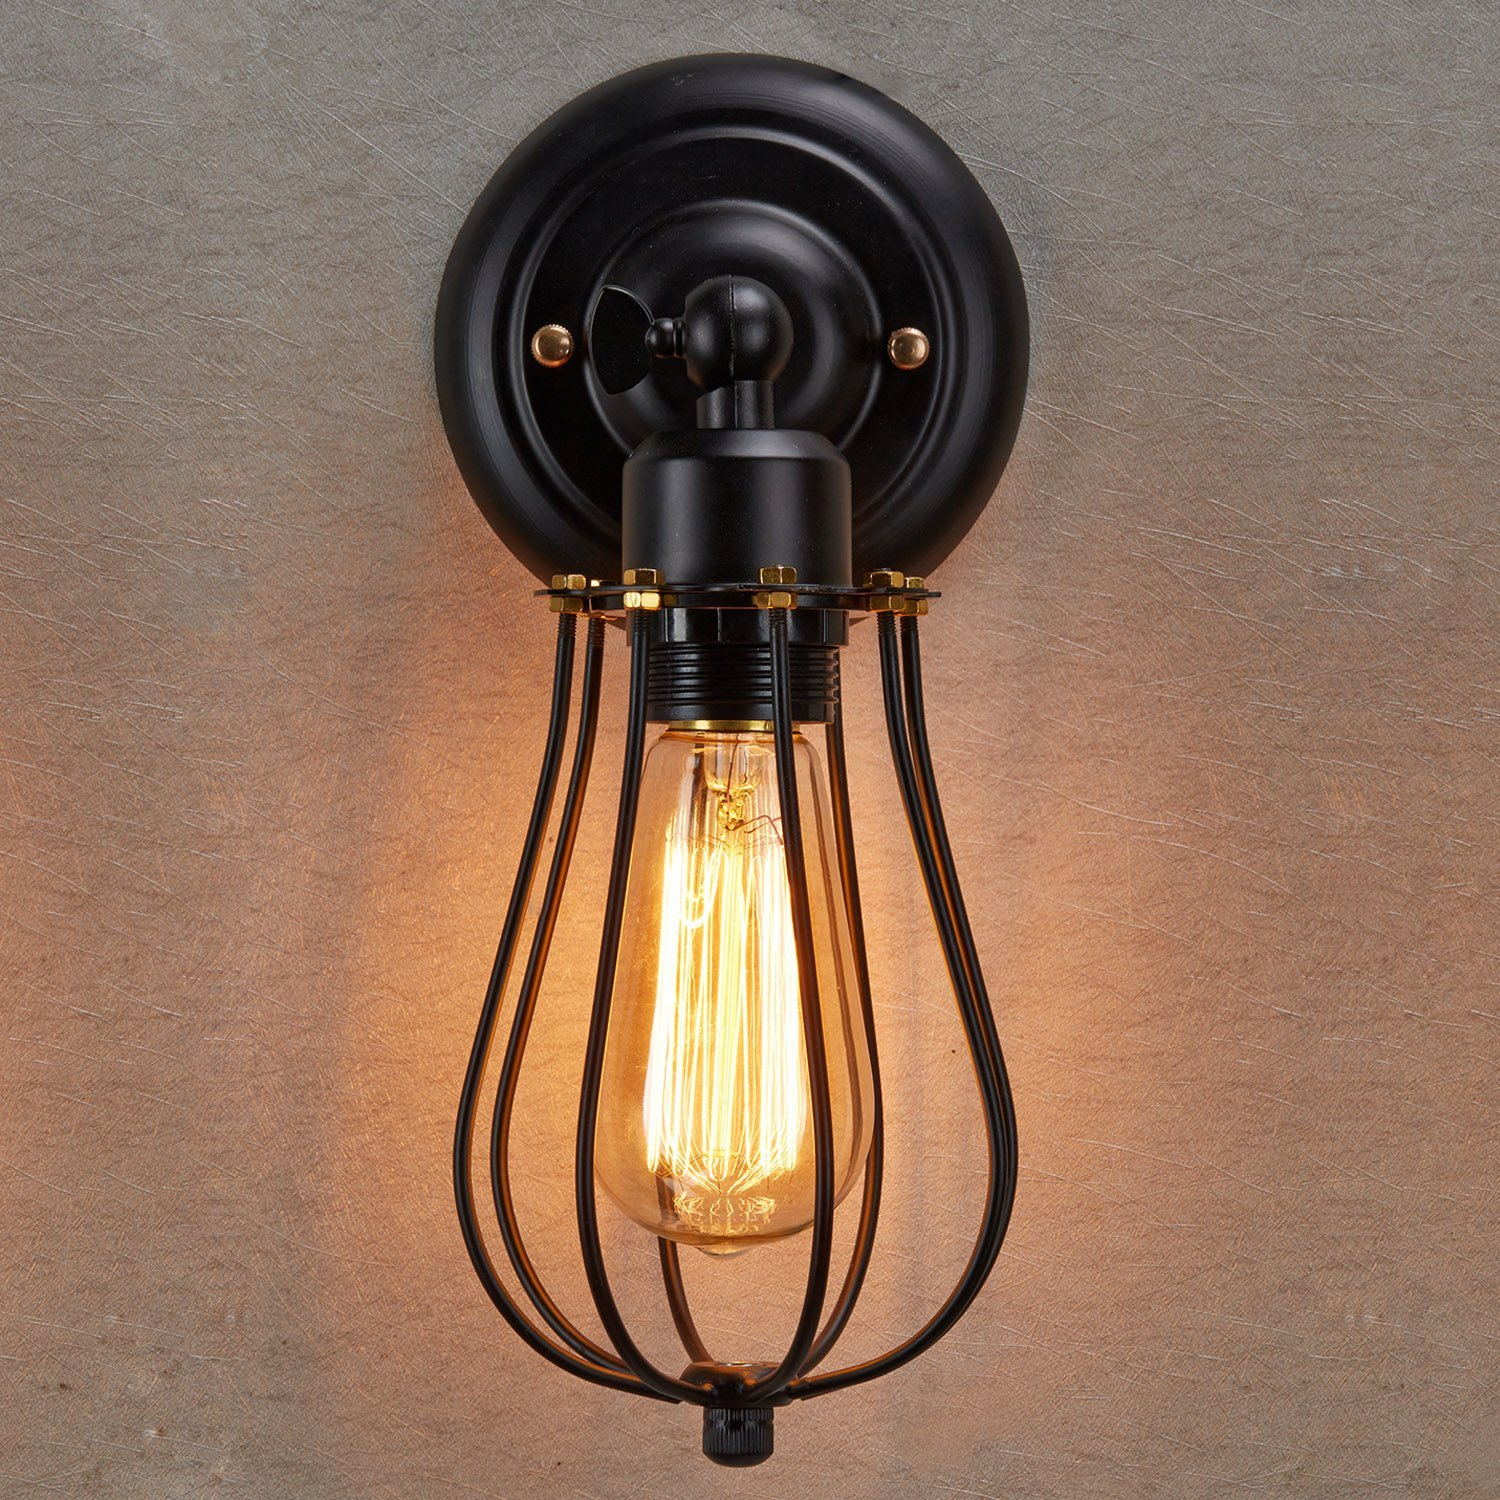 Wired Wall Sconces Wall Lighting Looks For Less Elliondecor